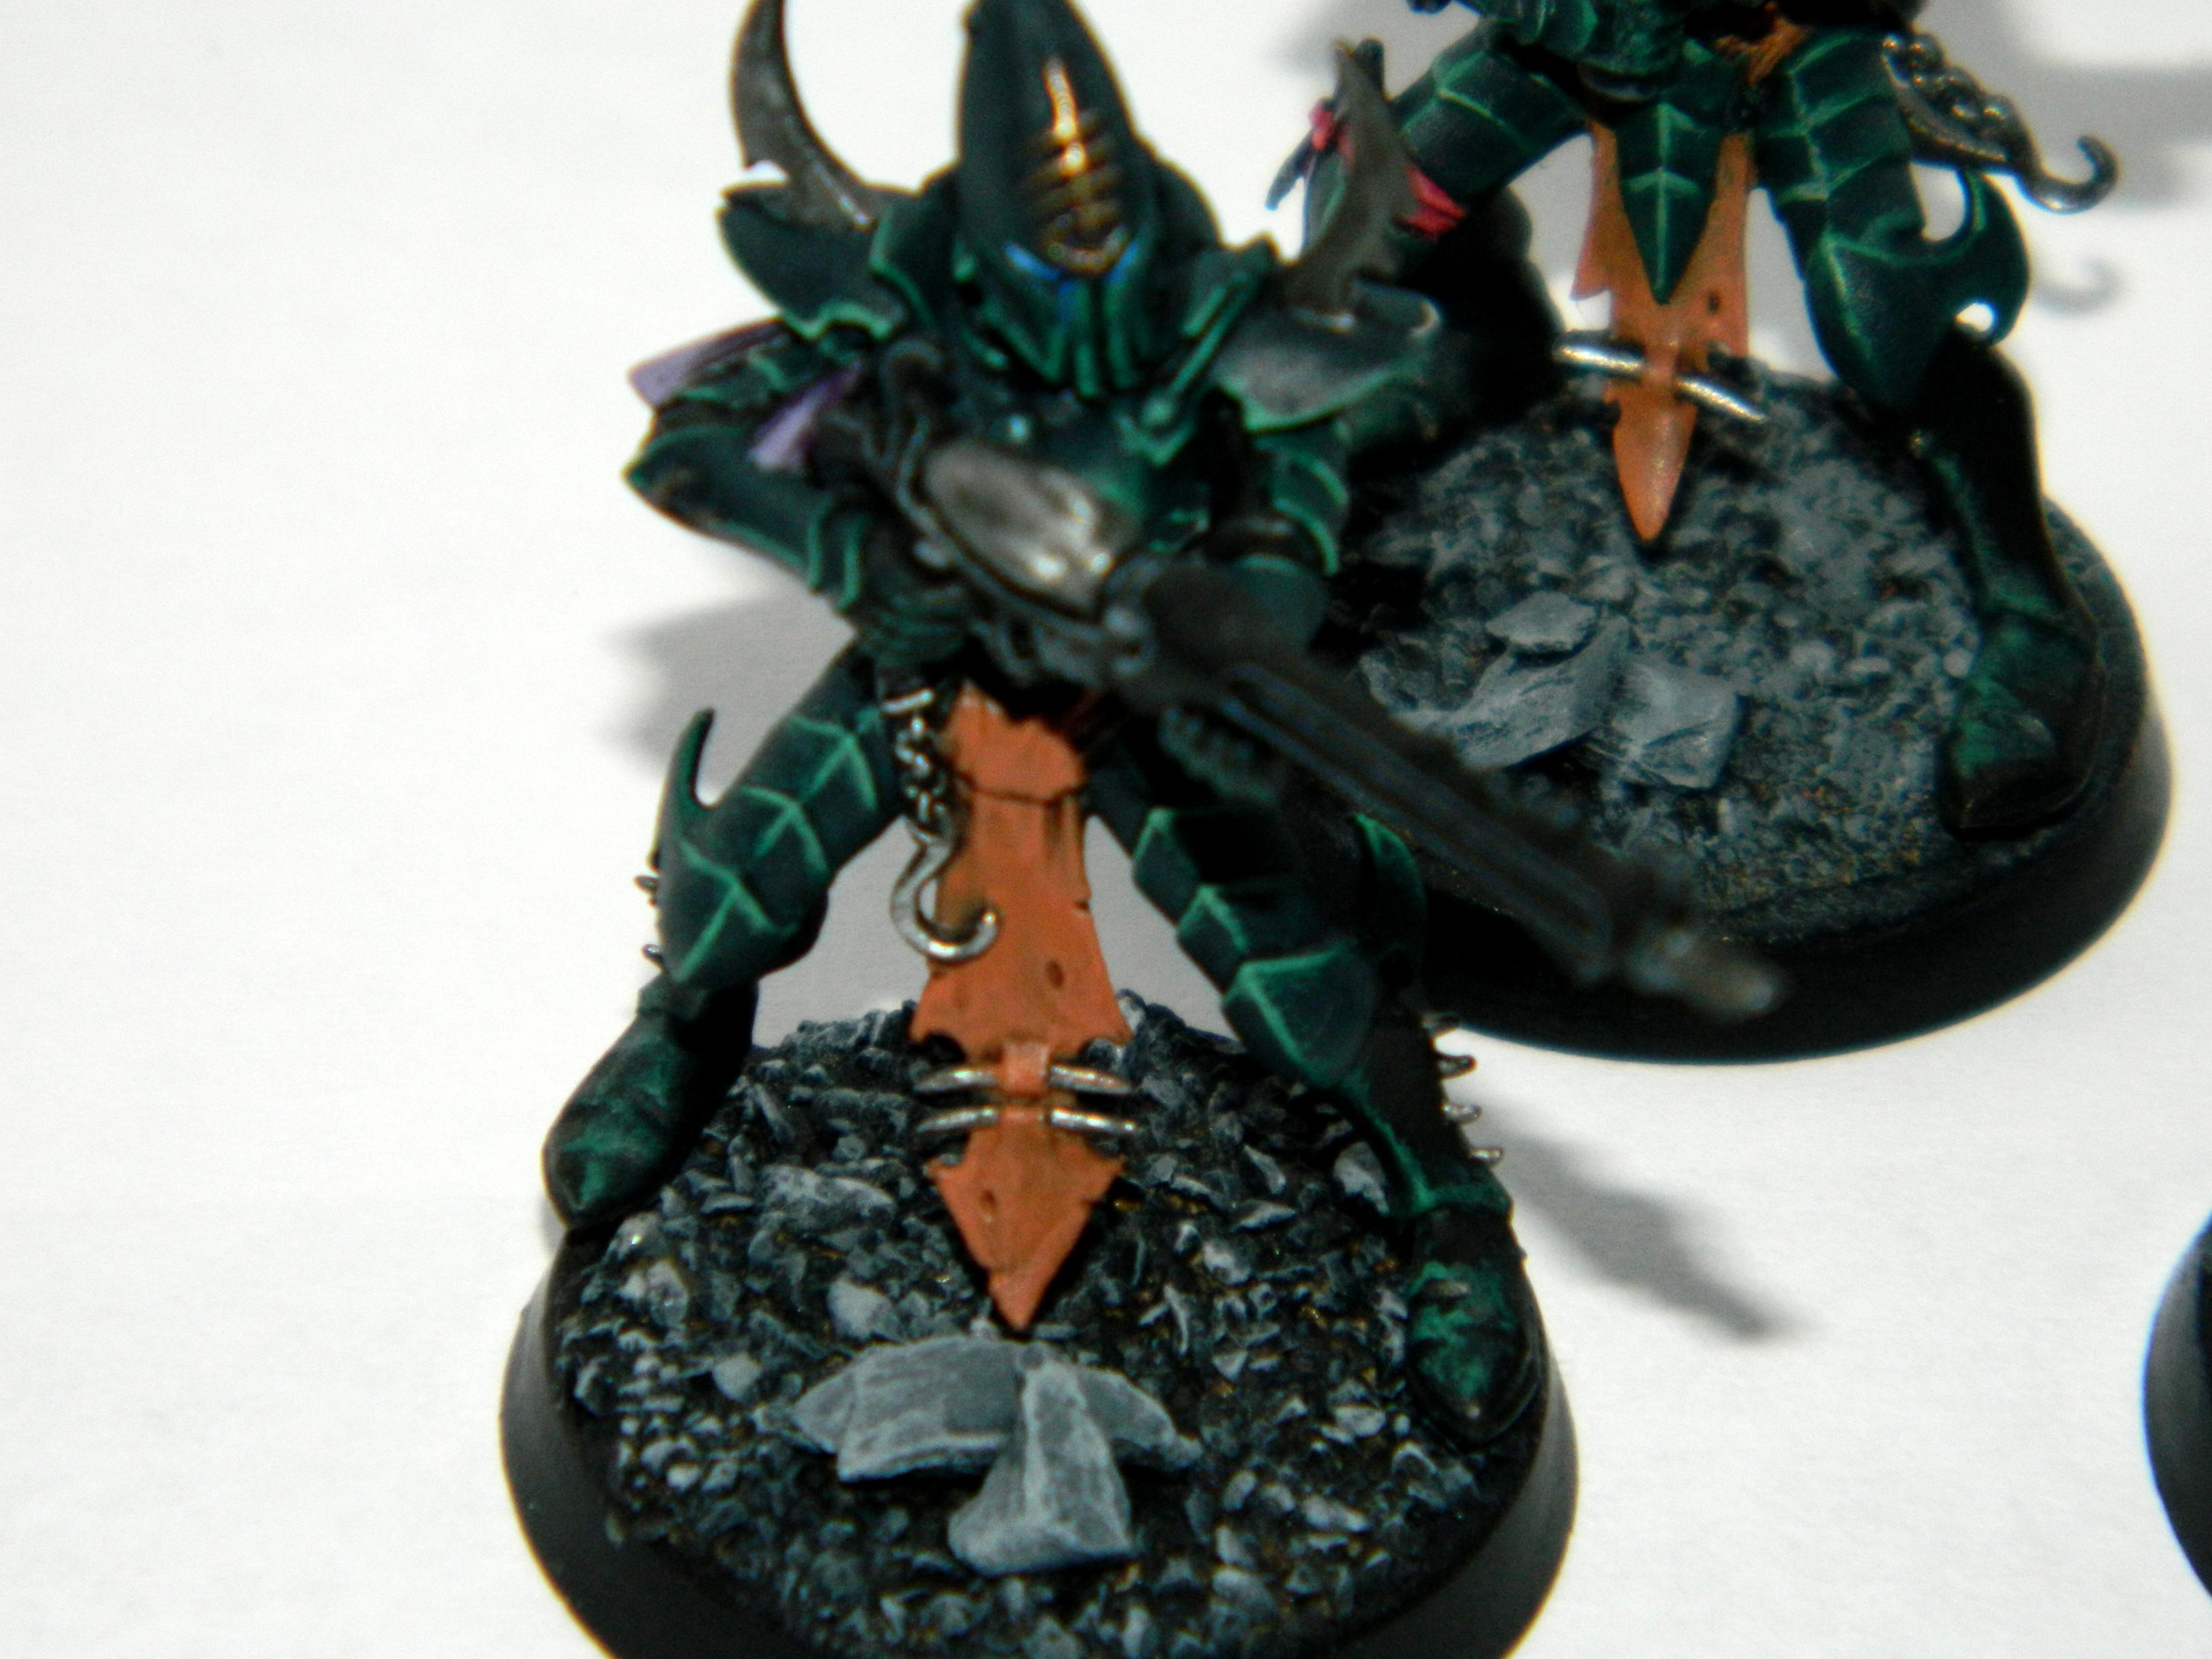 Dark Eldar, Kabalite Warrior